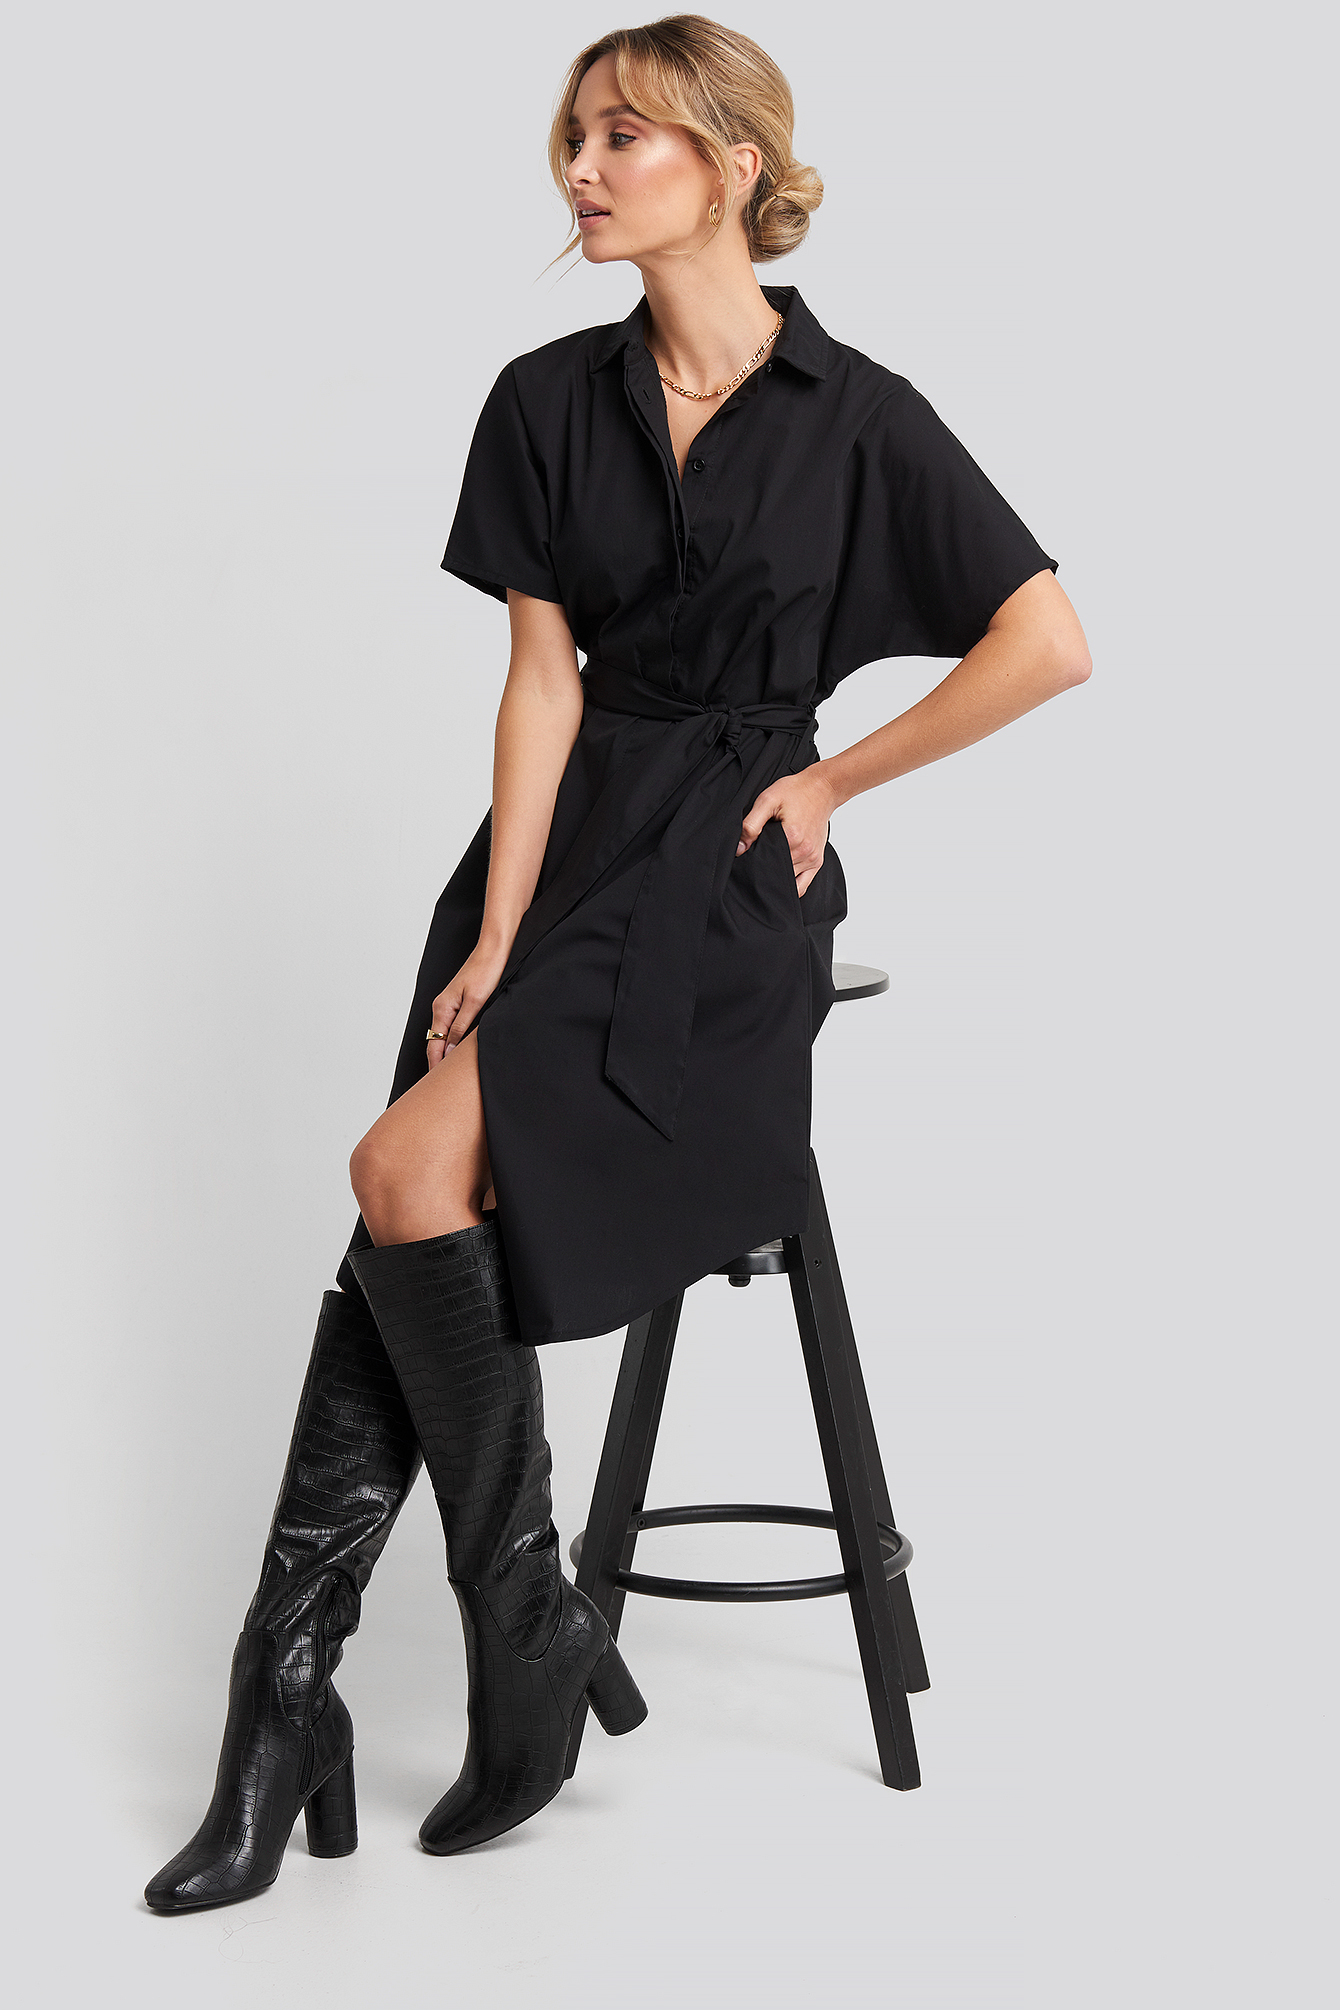 Black Belted Short Sleeve Shirt Dress